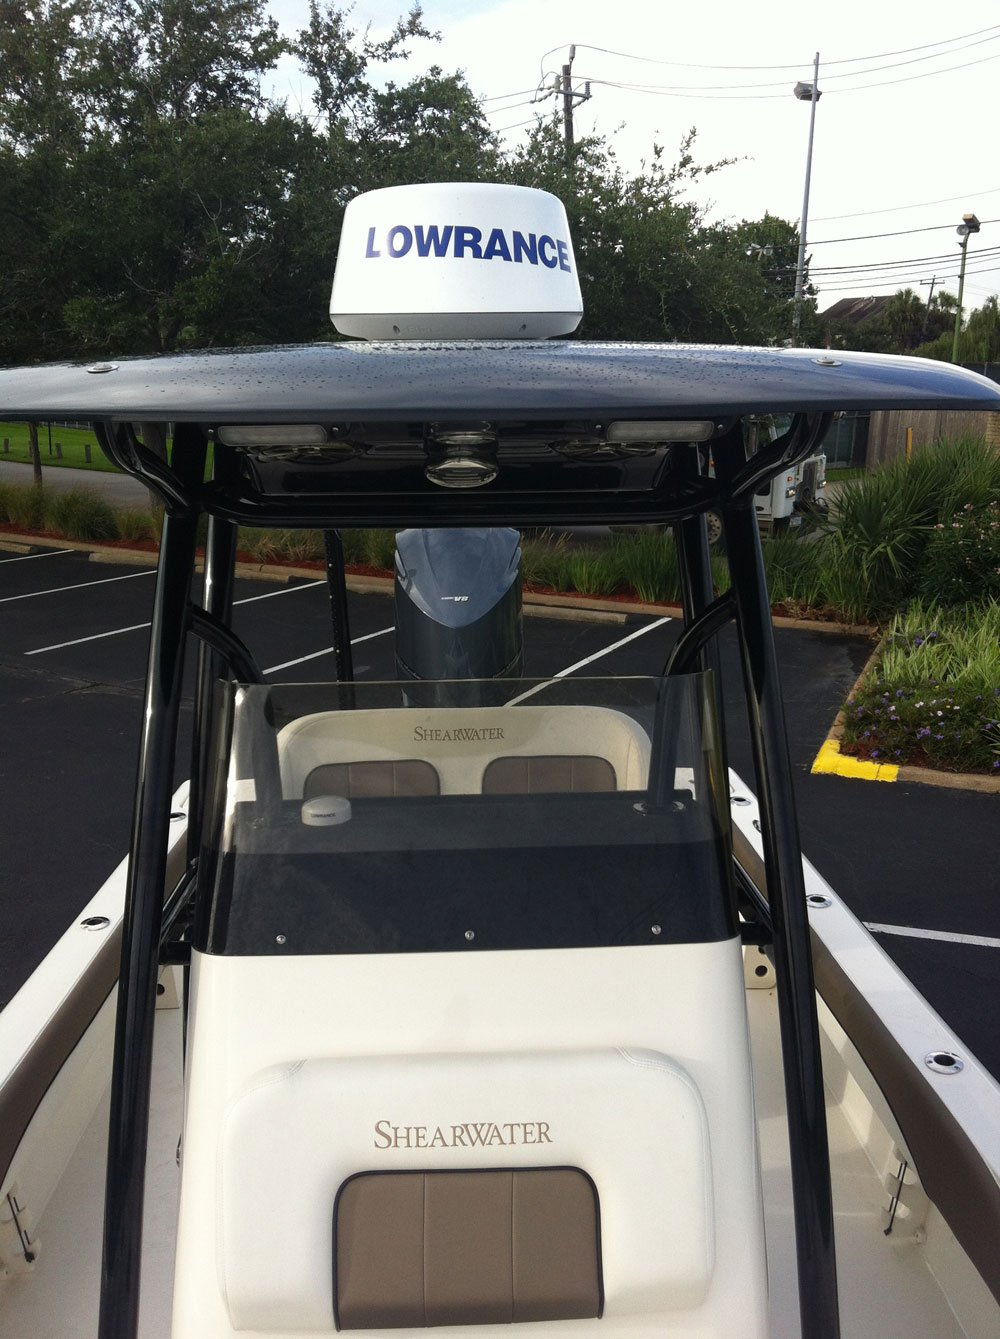 Lowrance Shear Water